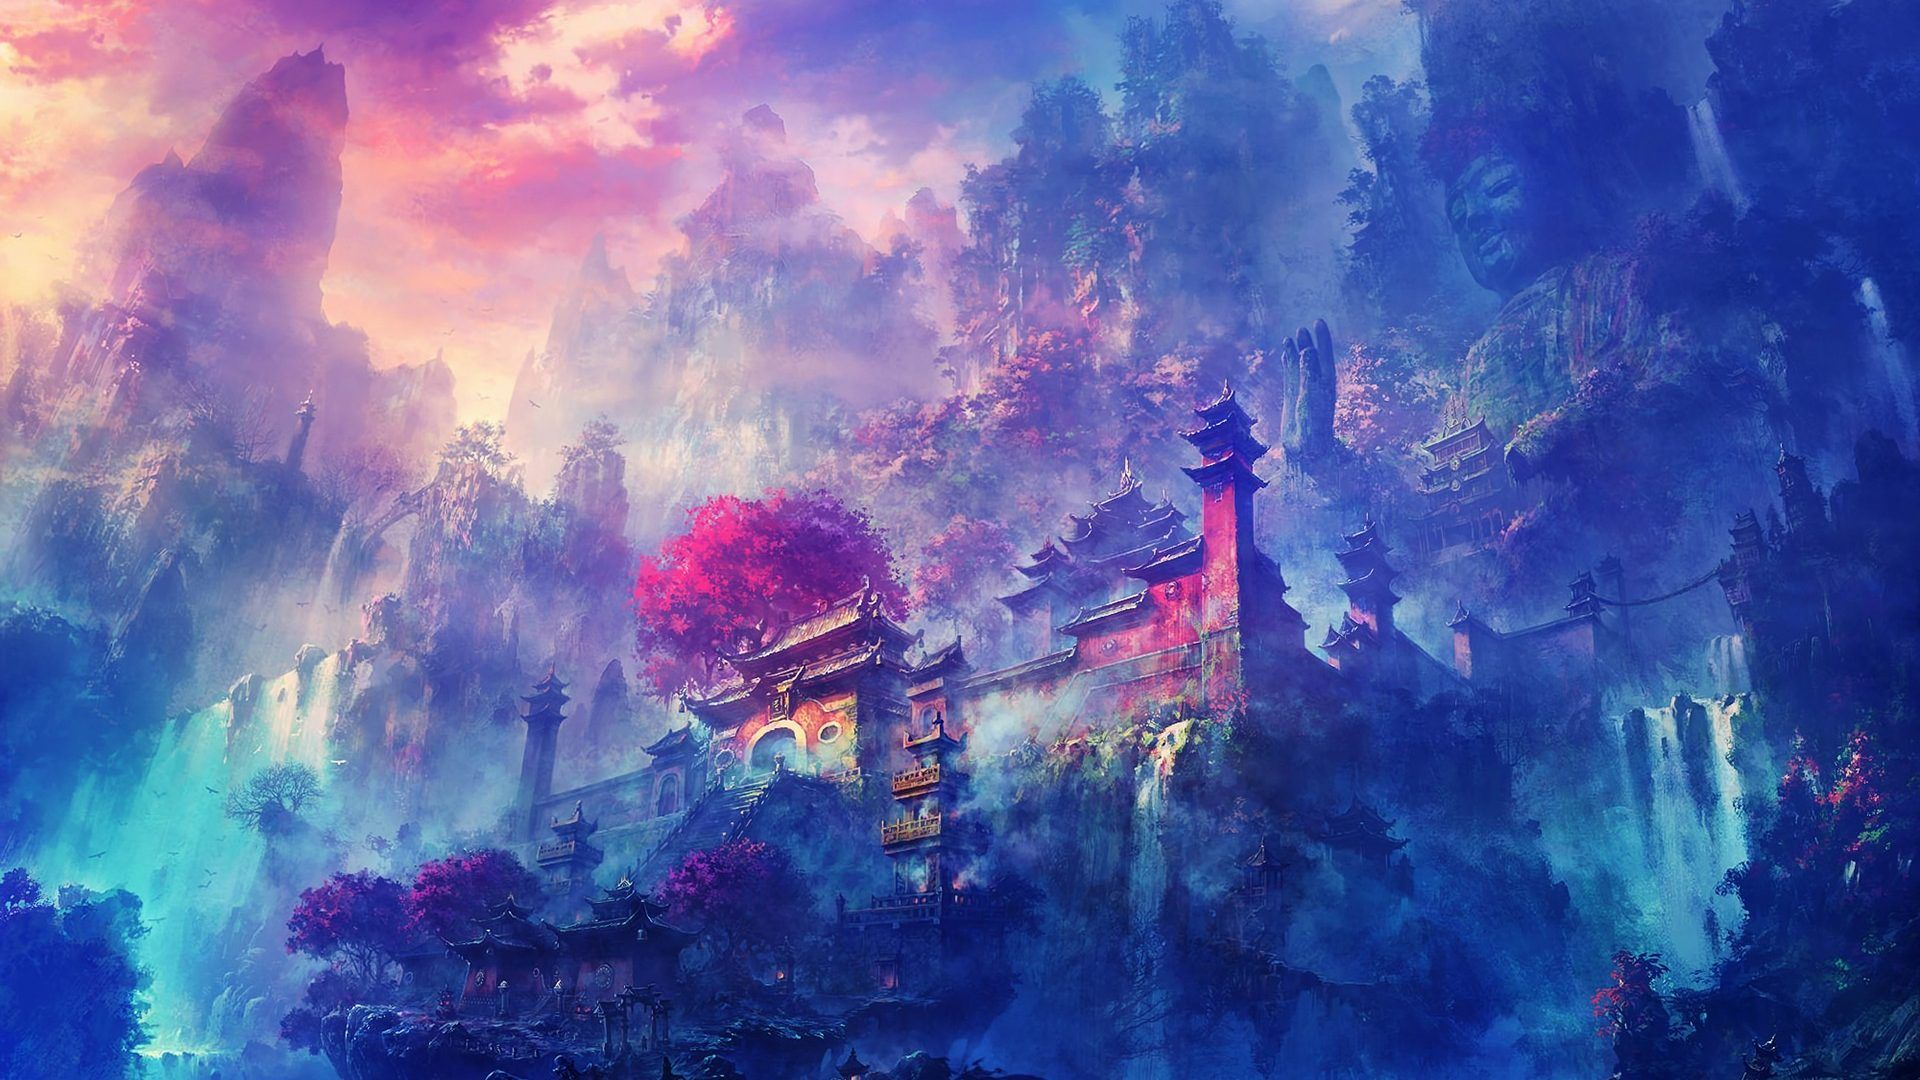 Big Anime Landscape Wallpapers Top Free Big Anime Landscape Backgrounds Wallpaperaccess